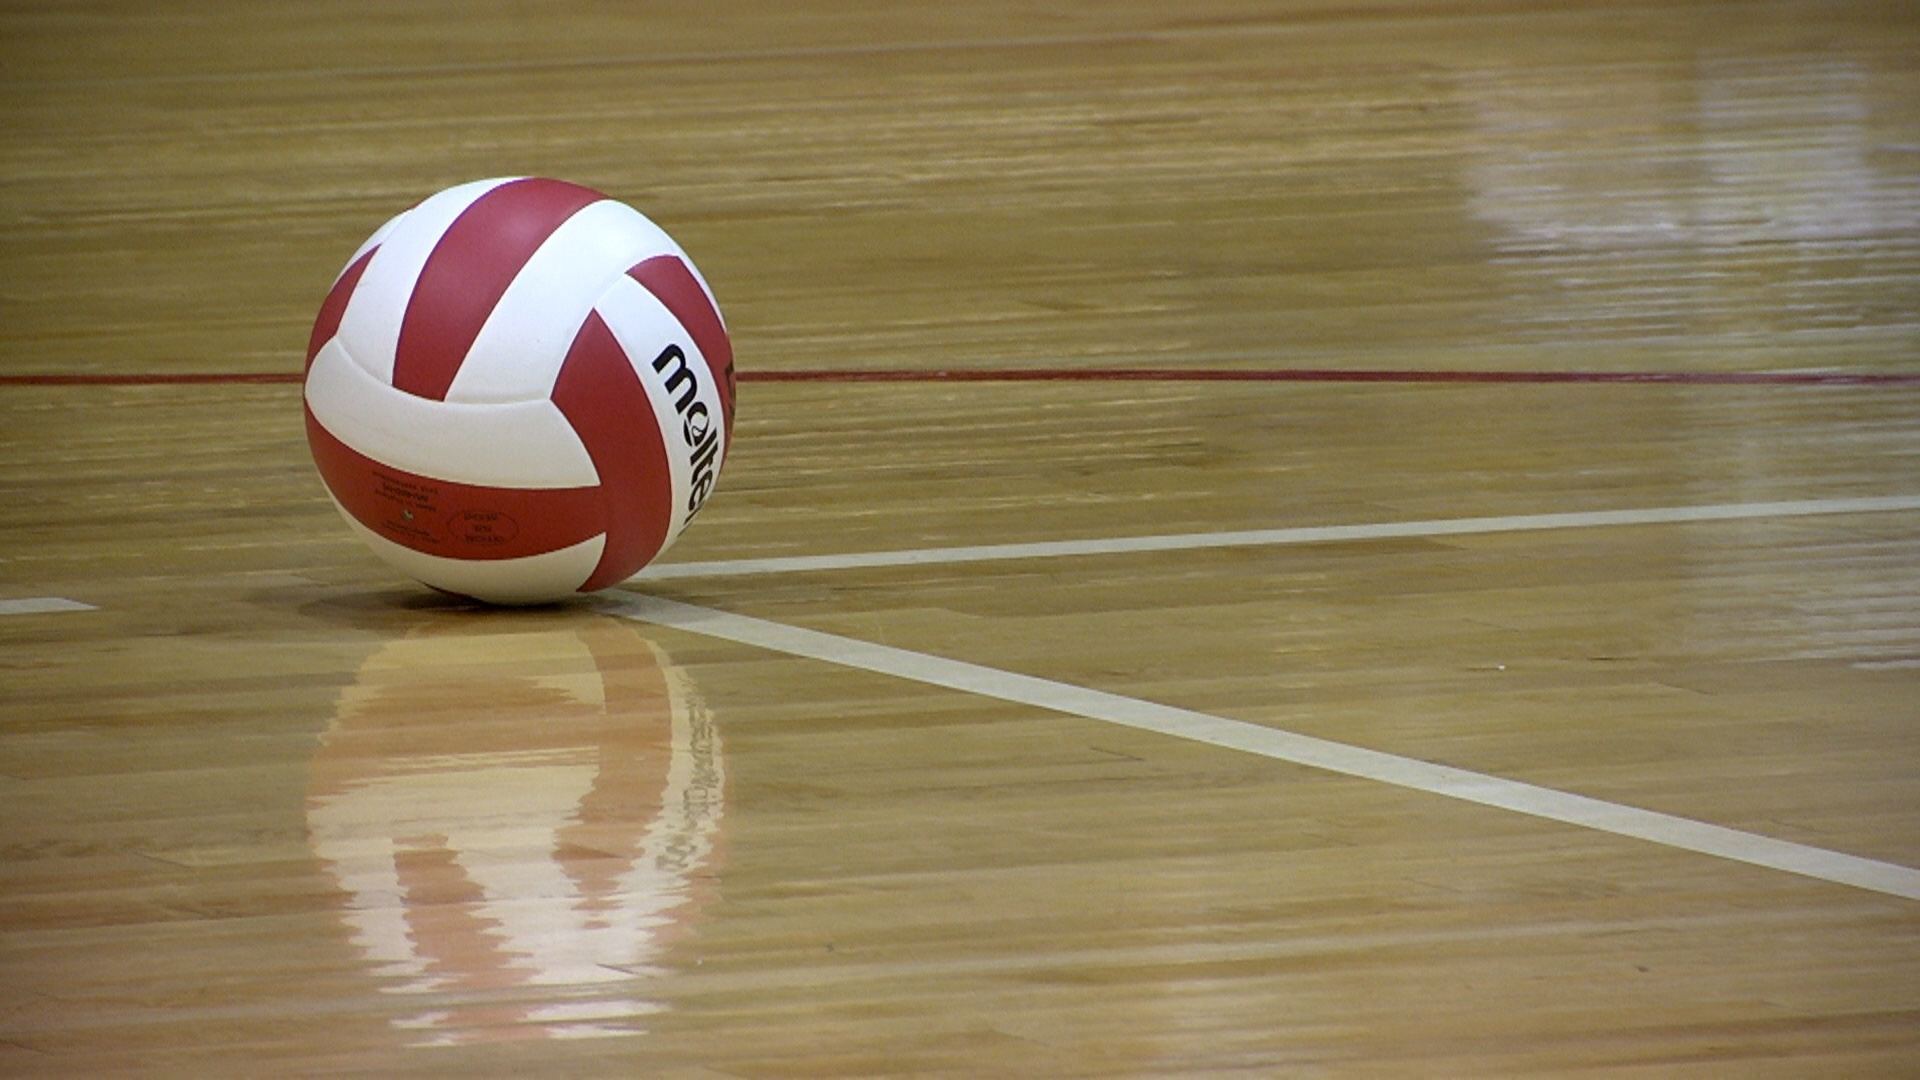 Volleyball Backgrounds Related Keywords amp Suggestions 1920x1080